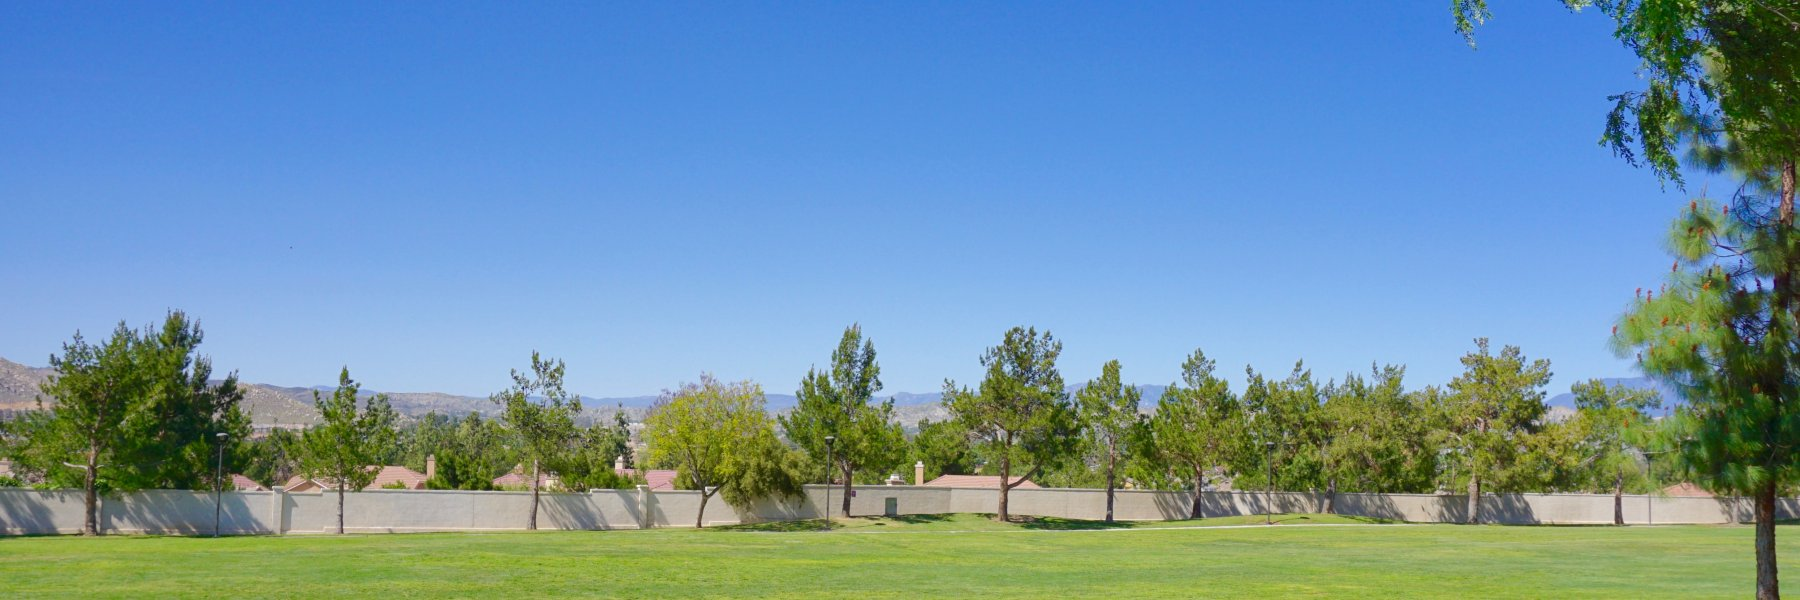 Mountain View is a community of homes in Moreno Valley California